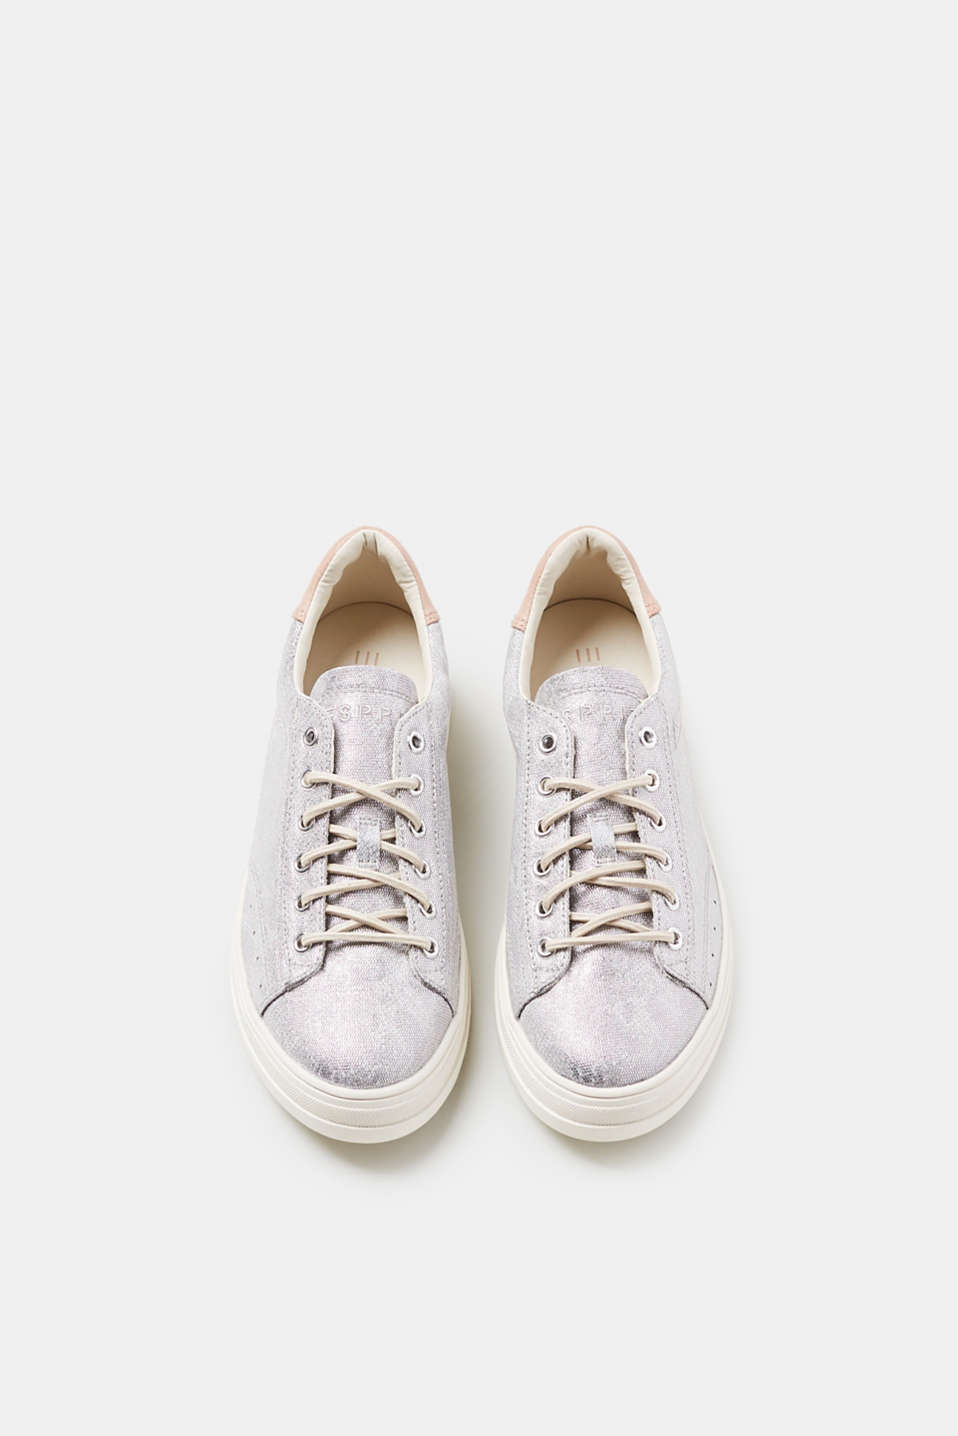 Trendy trainers in a cool metallic finish